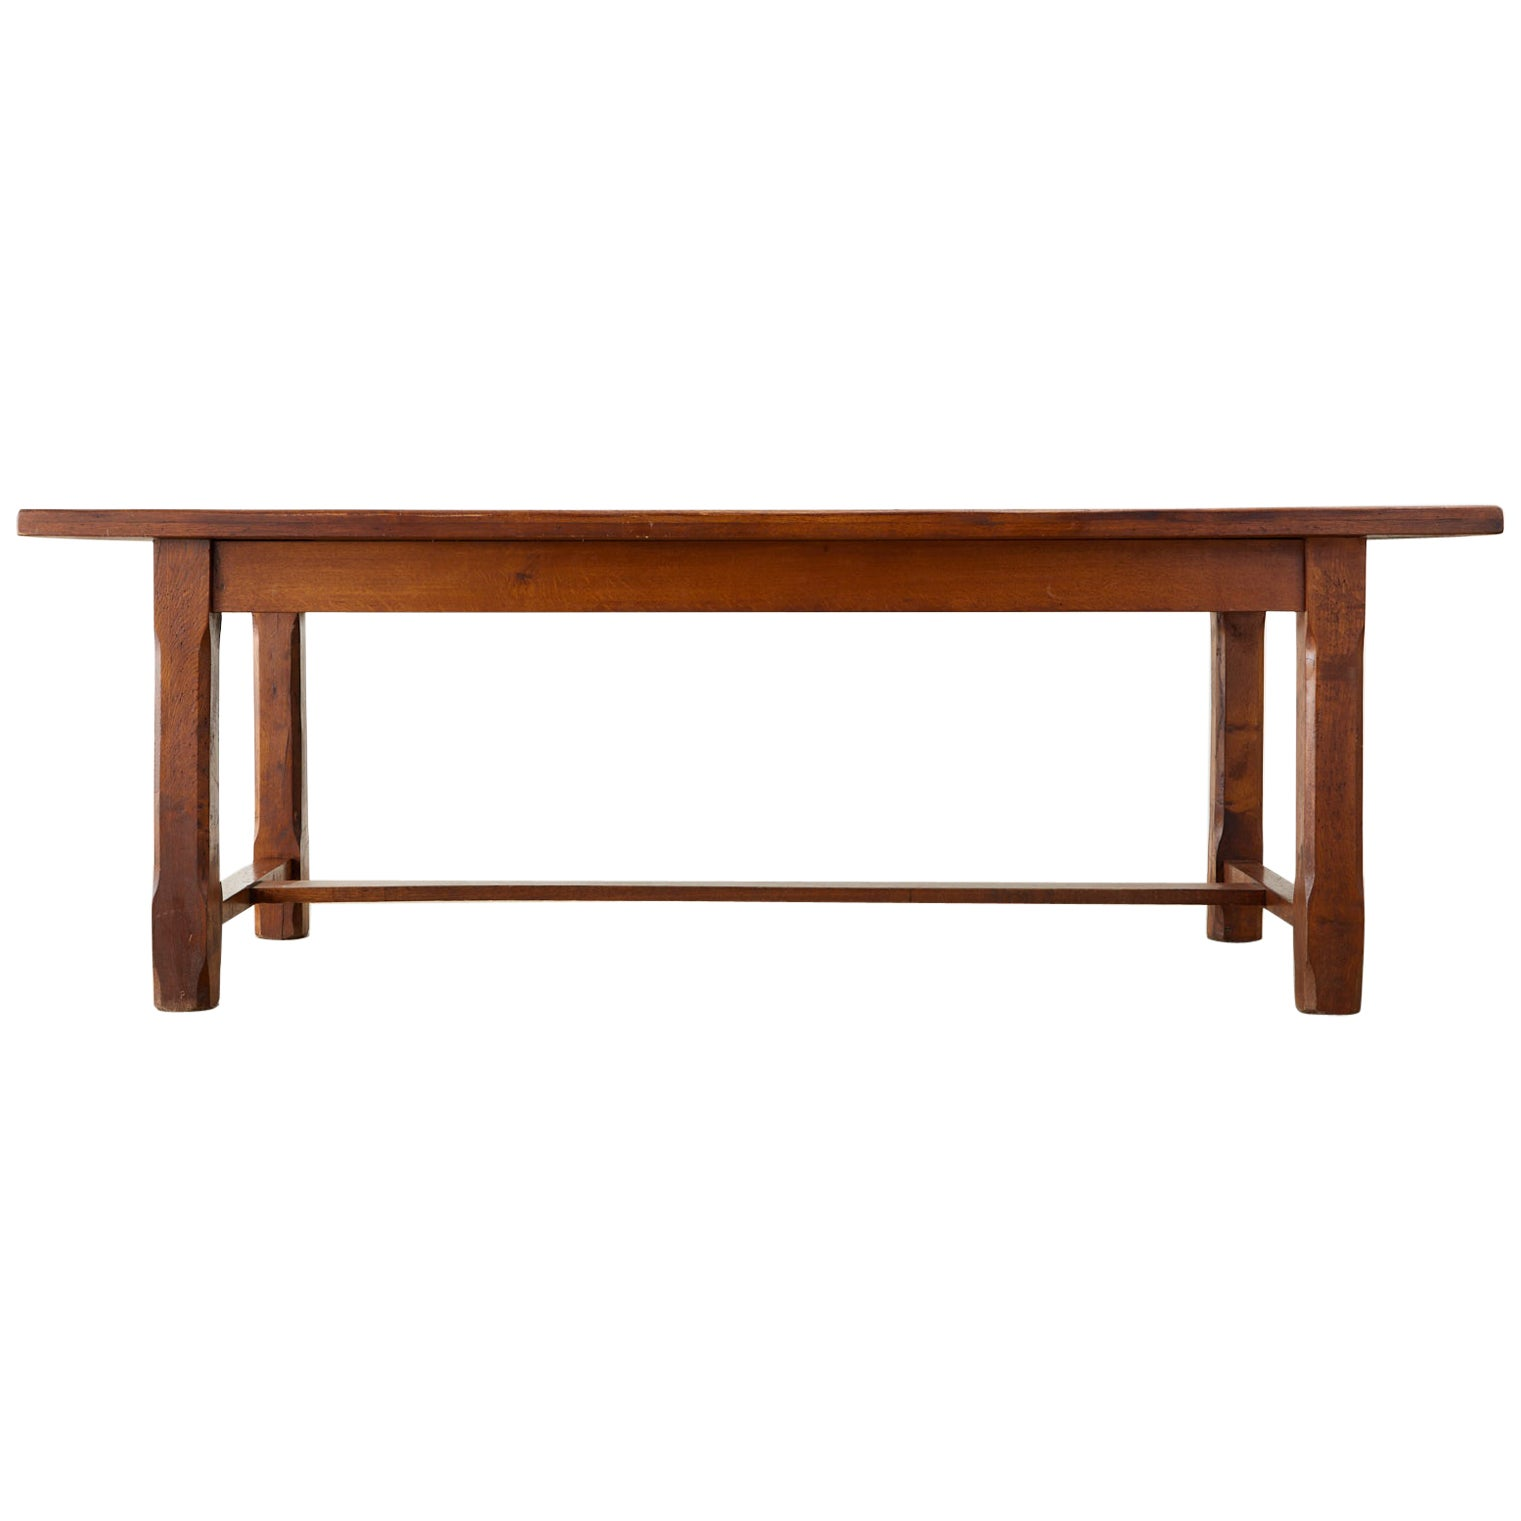 19th Century Country French Provincial Farmhouse Trestle Table